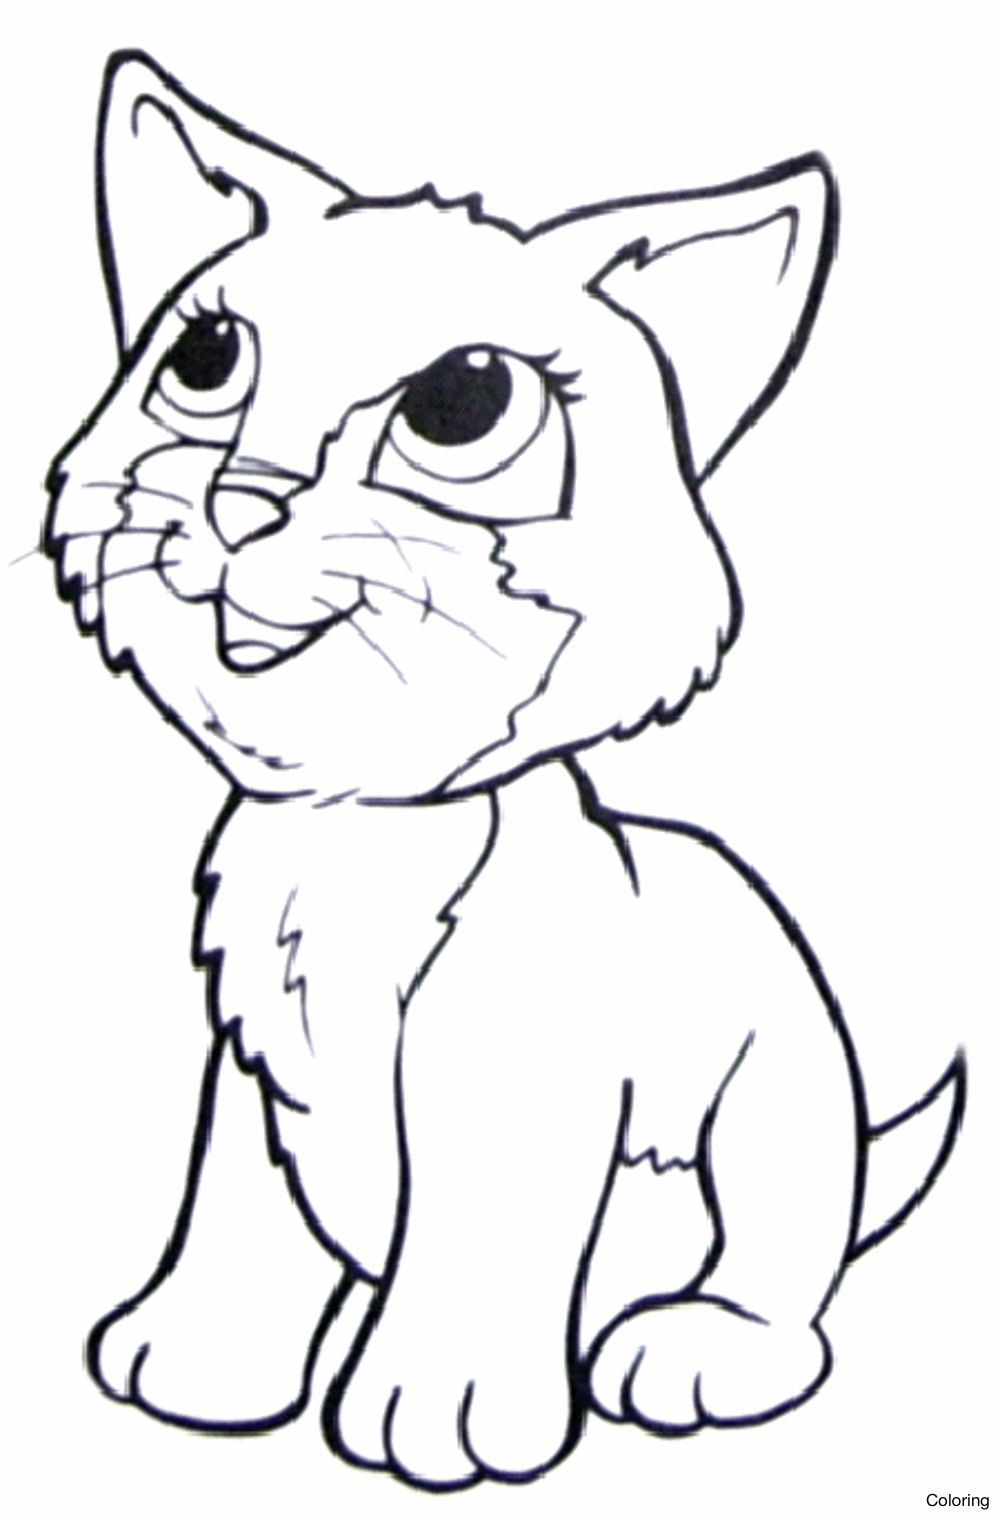 1000x1516 Cute Cat Coloring Pages Kitty Free Printable Friends Diaiz